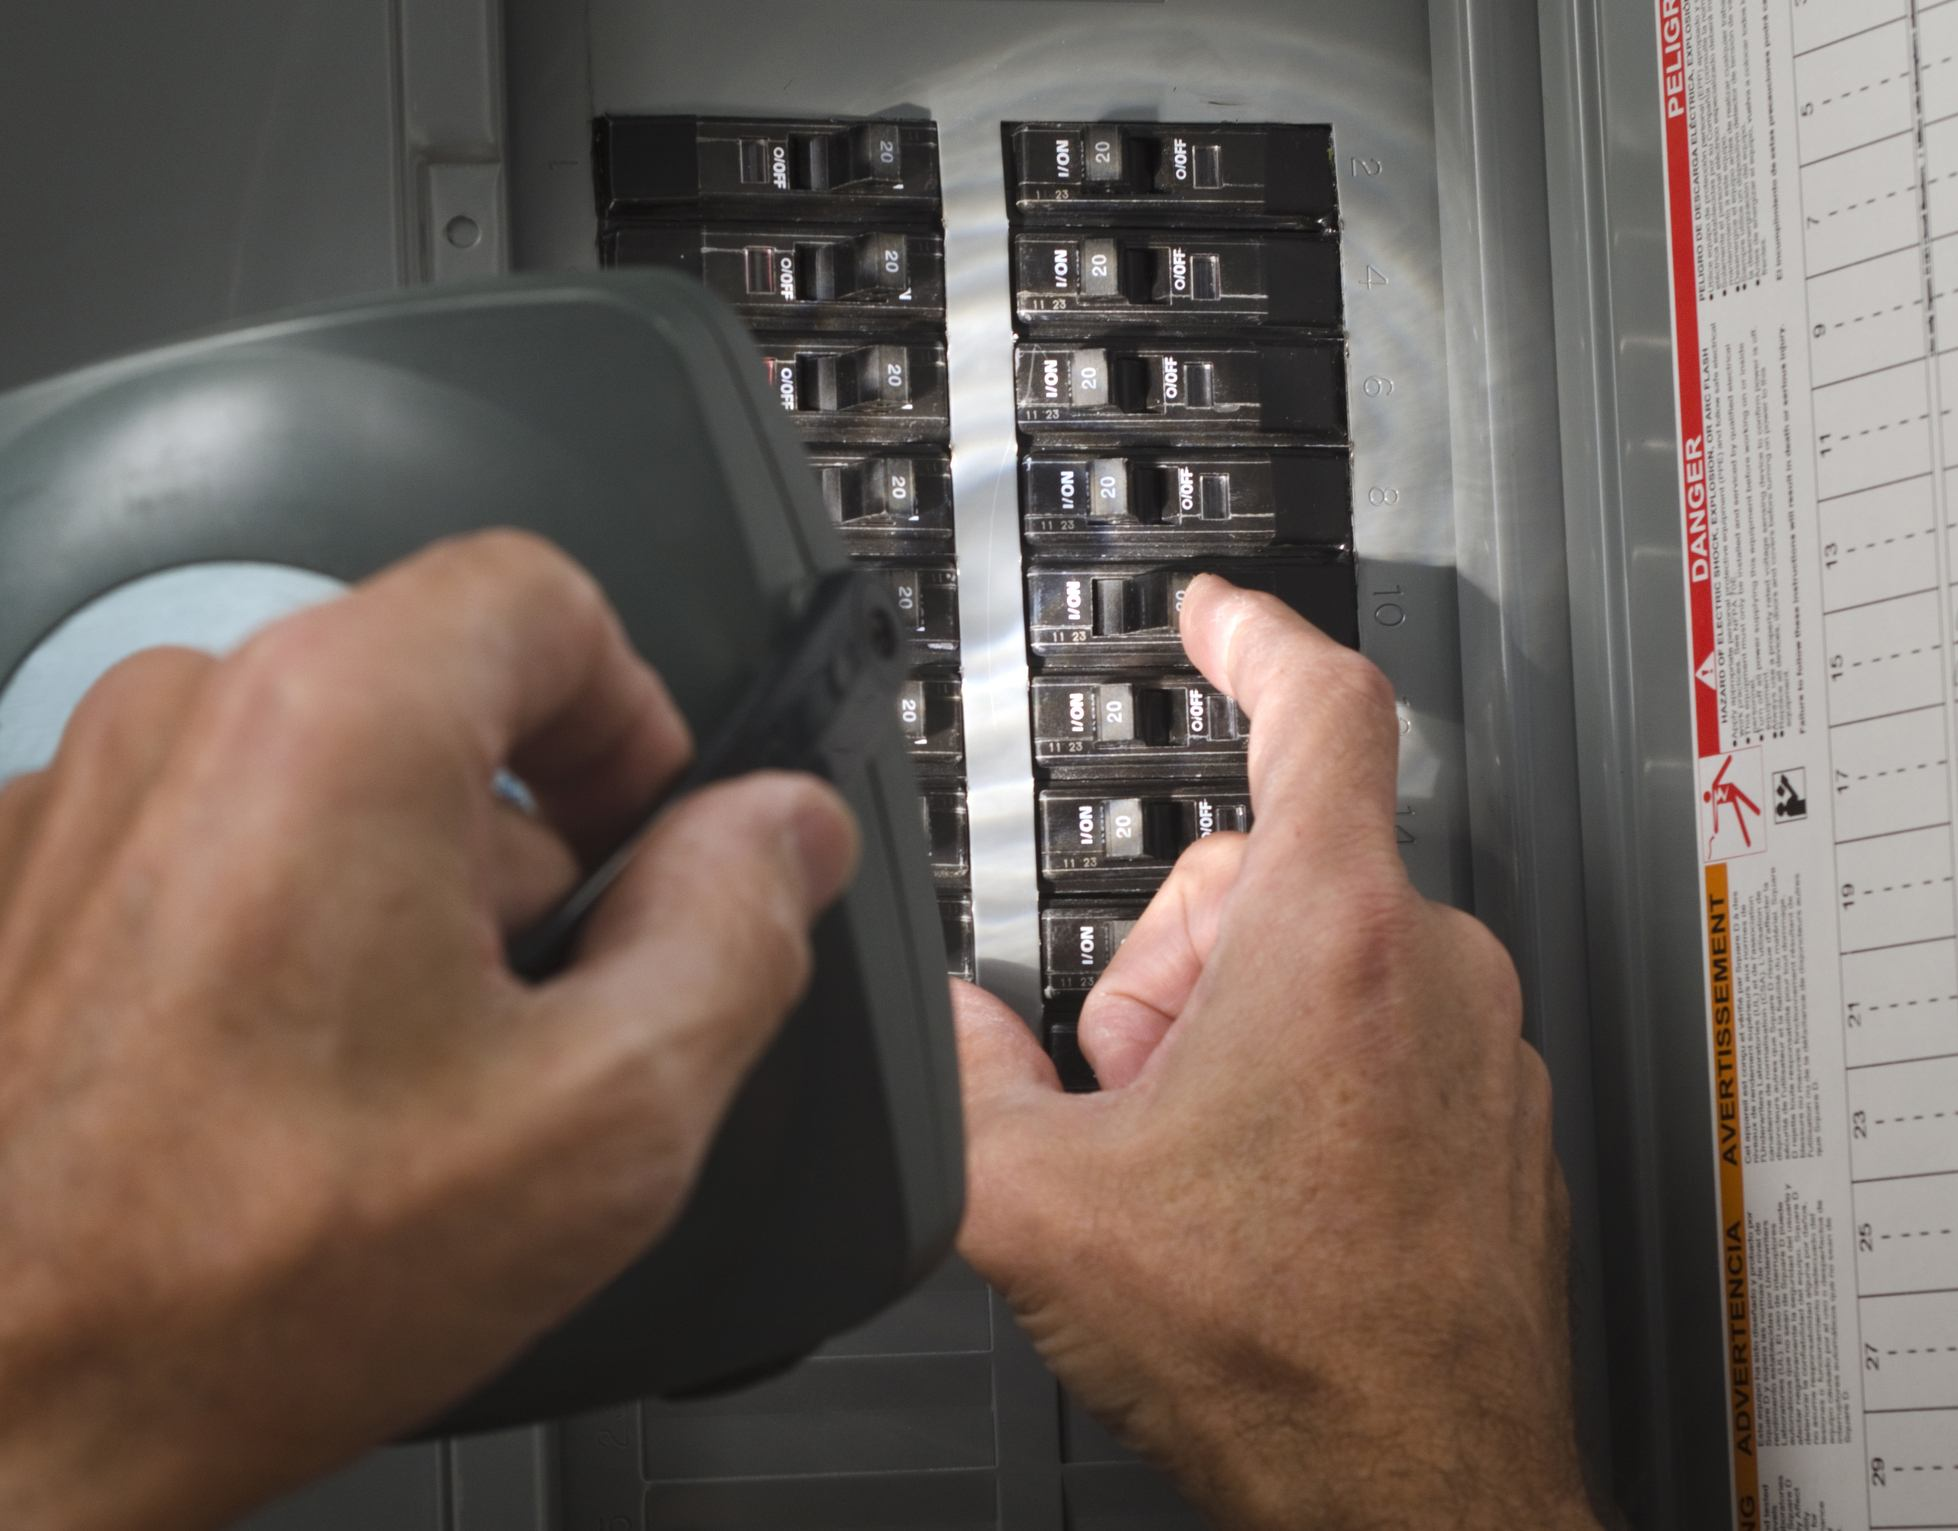 Man with flashlight looking at circuit breaker